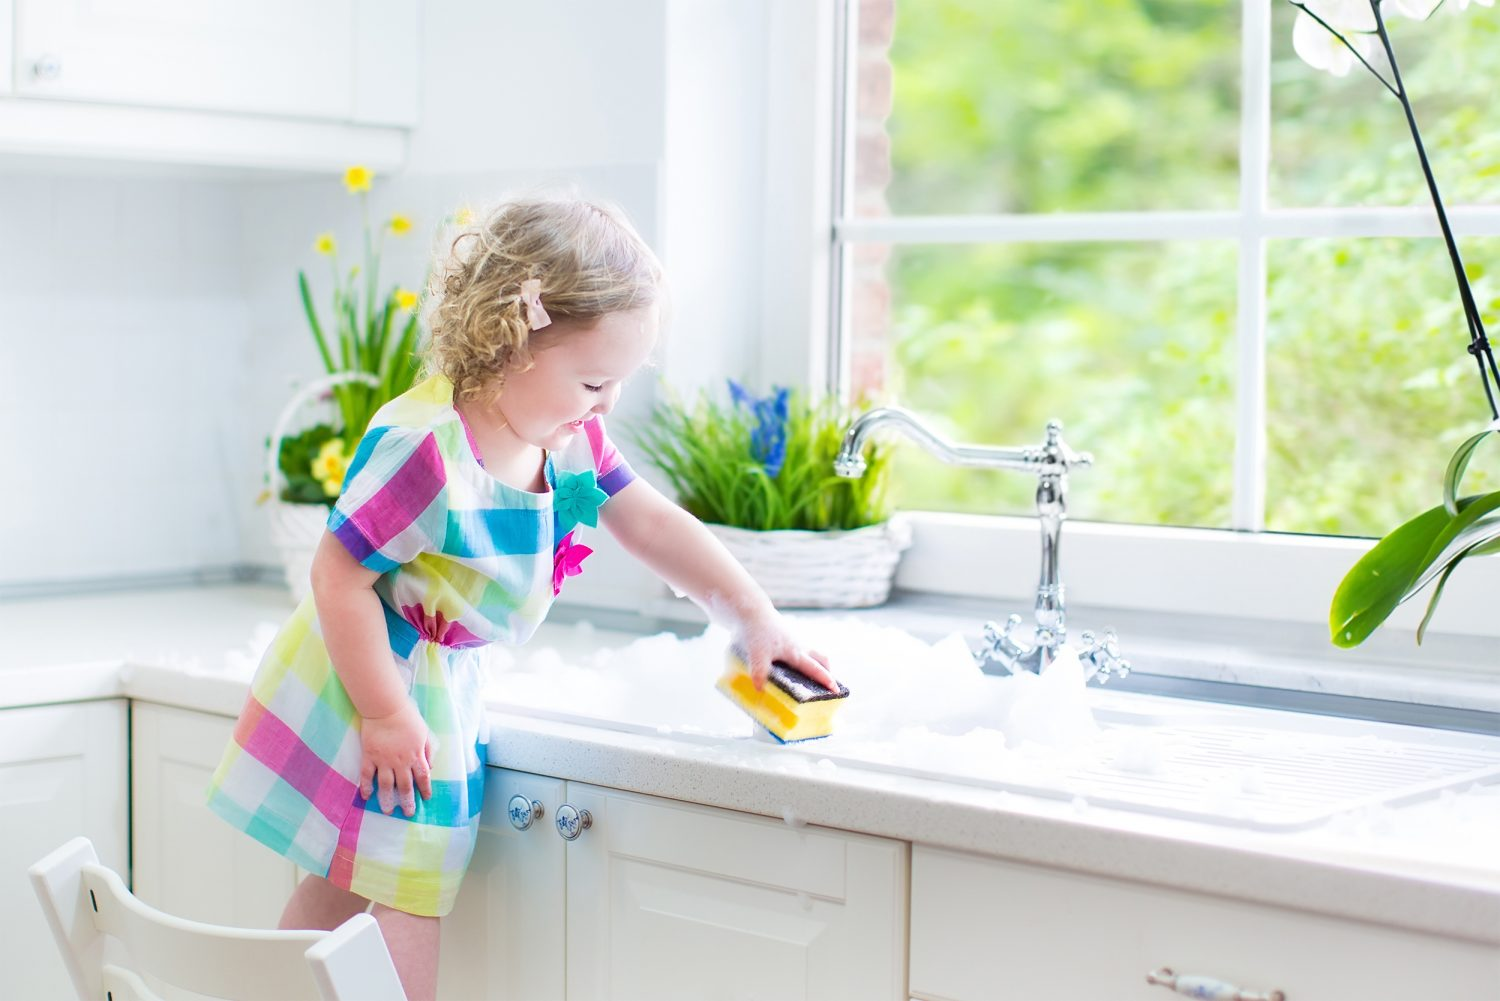 Cute toddler girl in colorful dress cleaning table on kitchen